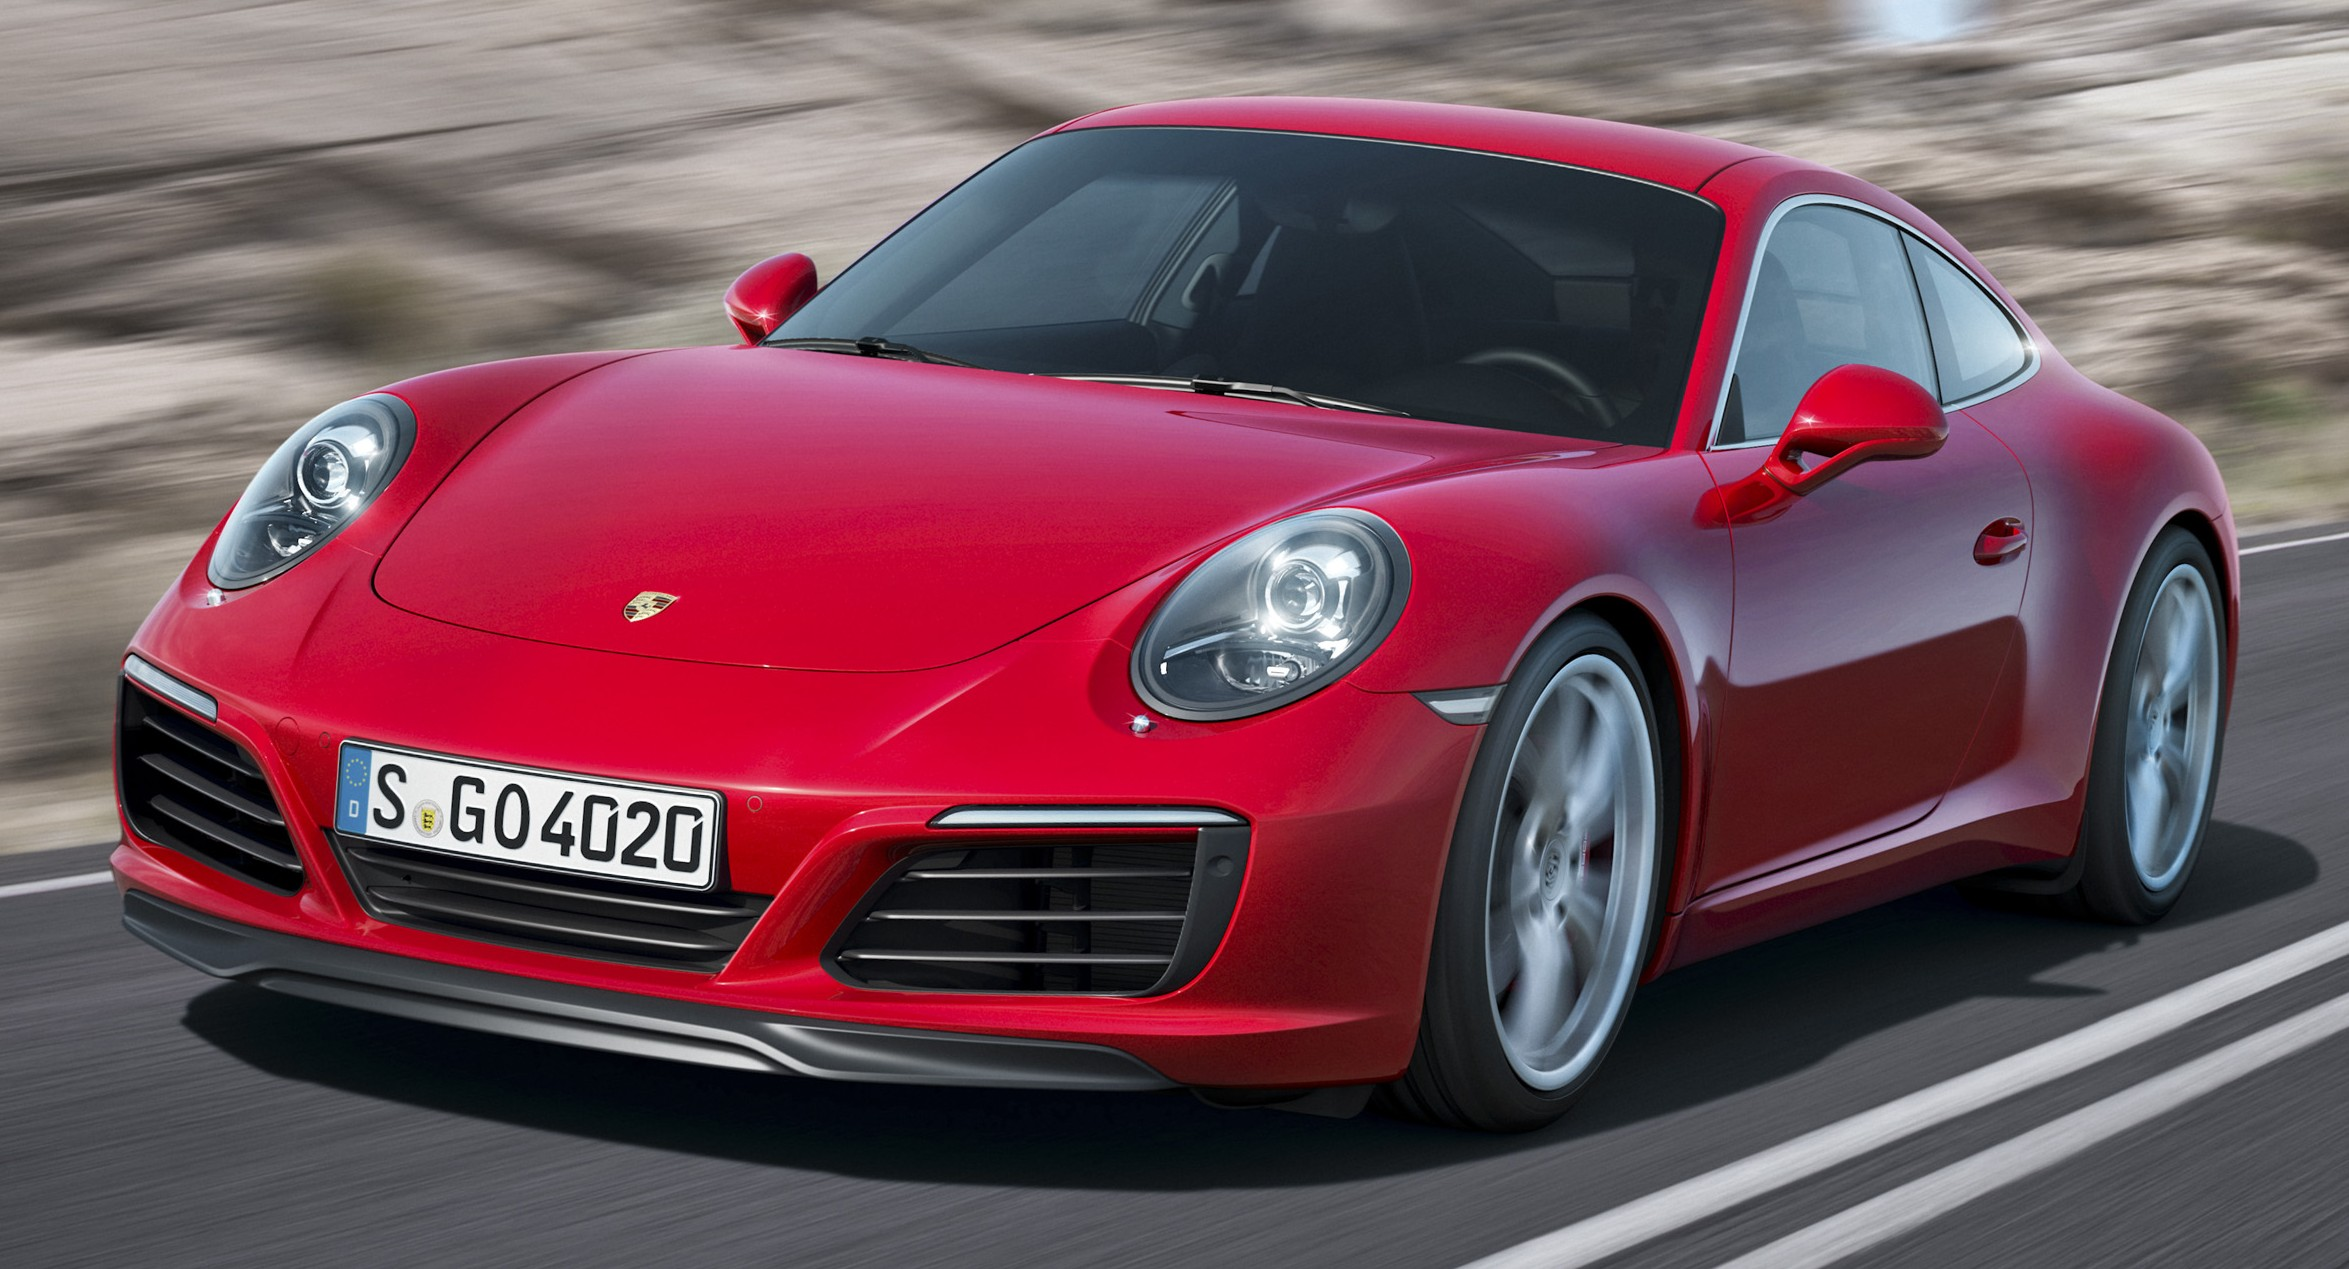 2016 porsche 911 carrera carrera s facelift revealed. Black Bedroom Furniture Sets. Home Design Ideas